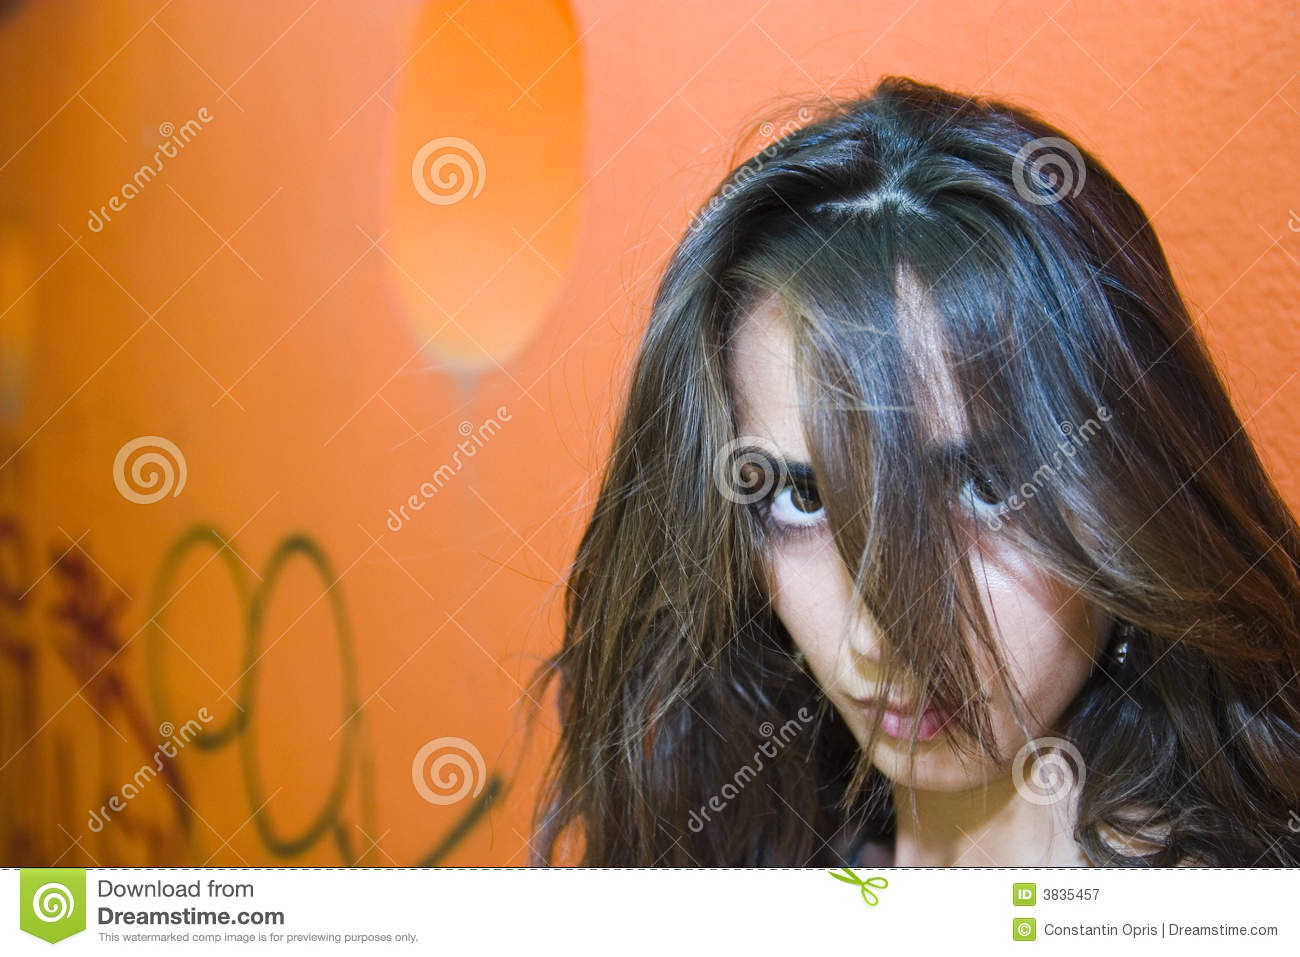 Girl With Hair Over Face Stock Image Image Of Glancing 3835457